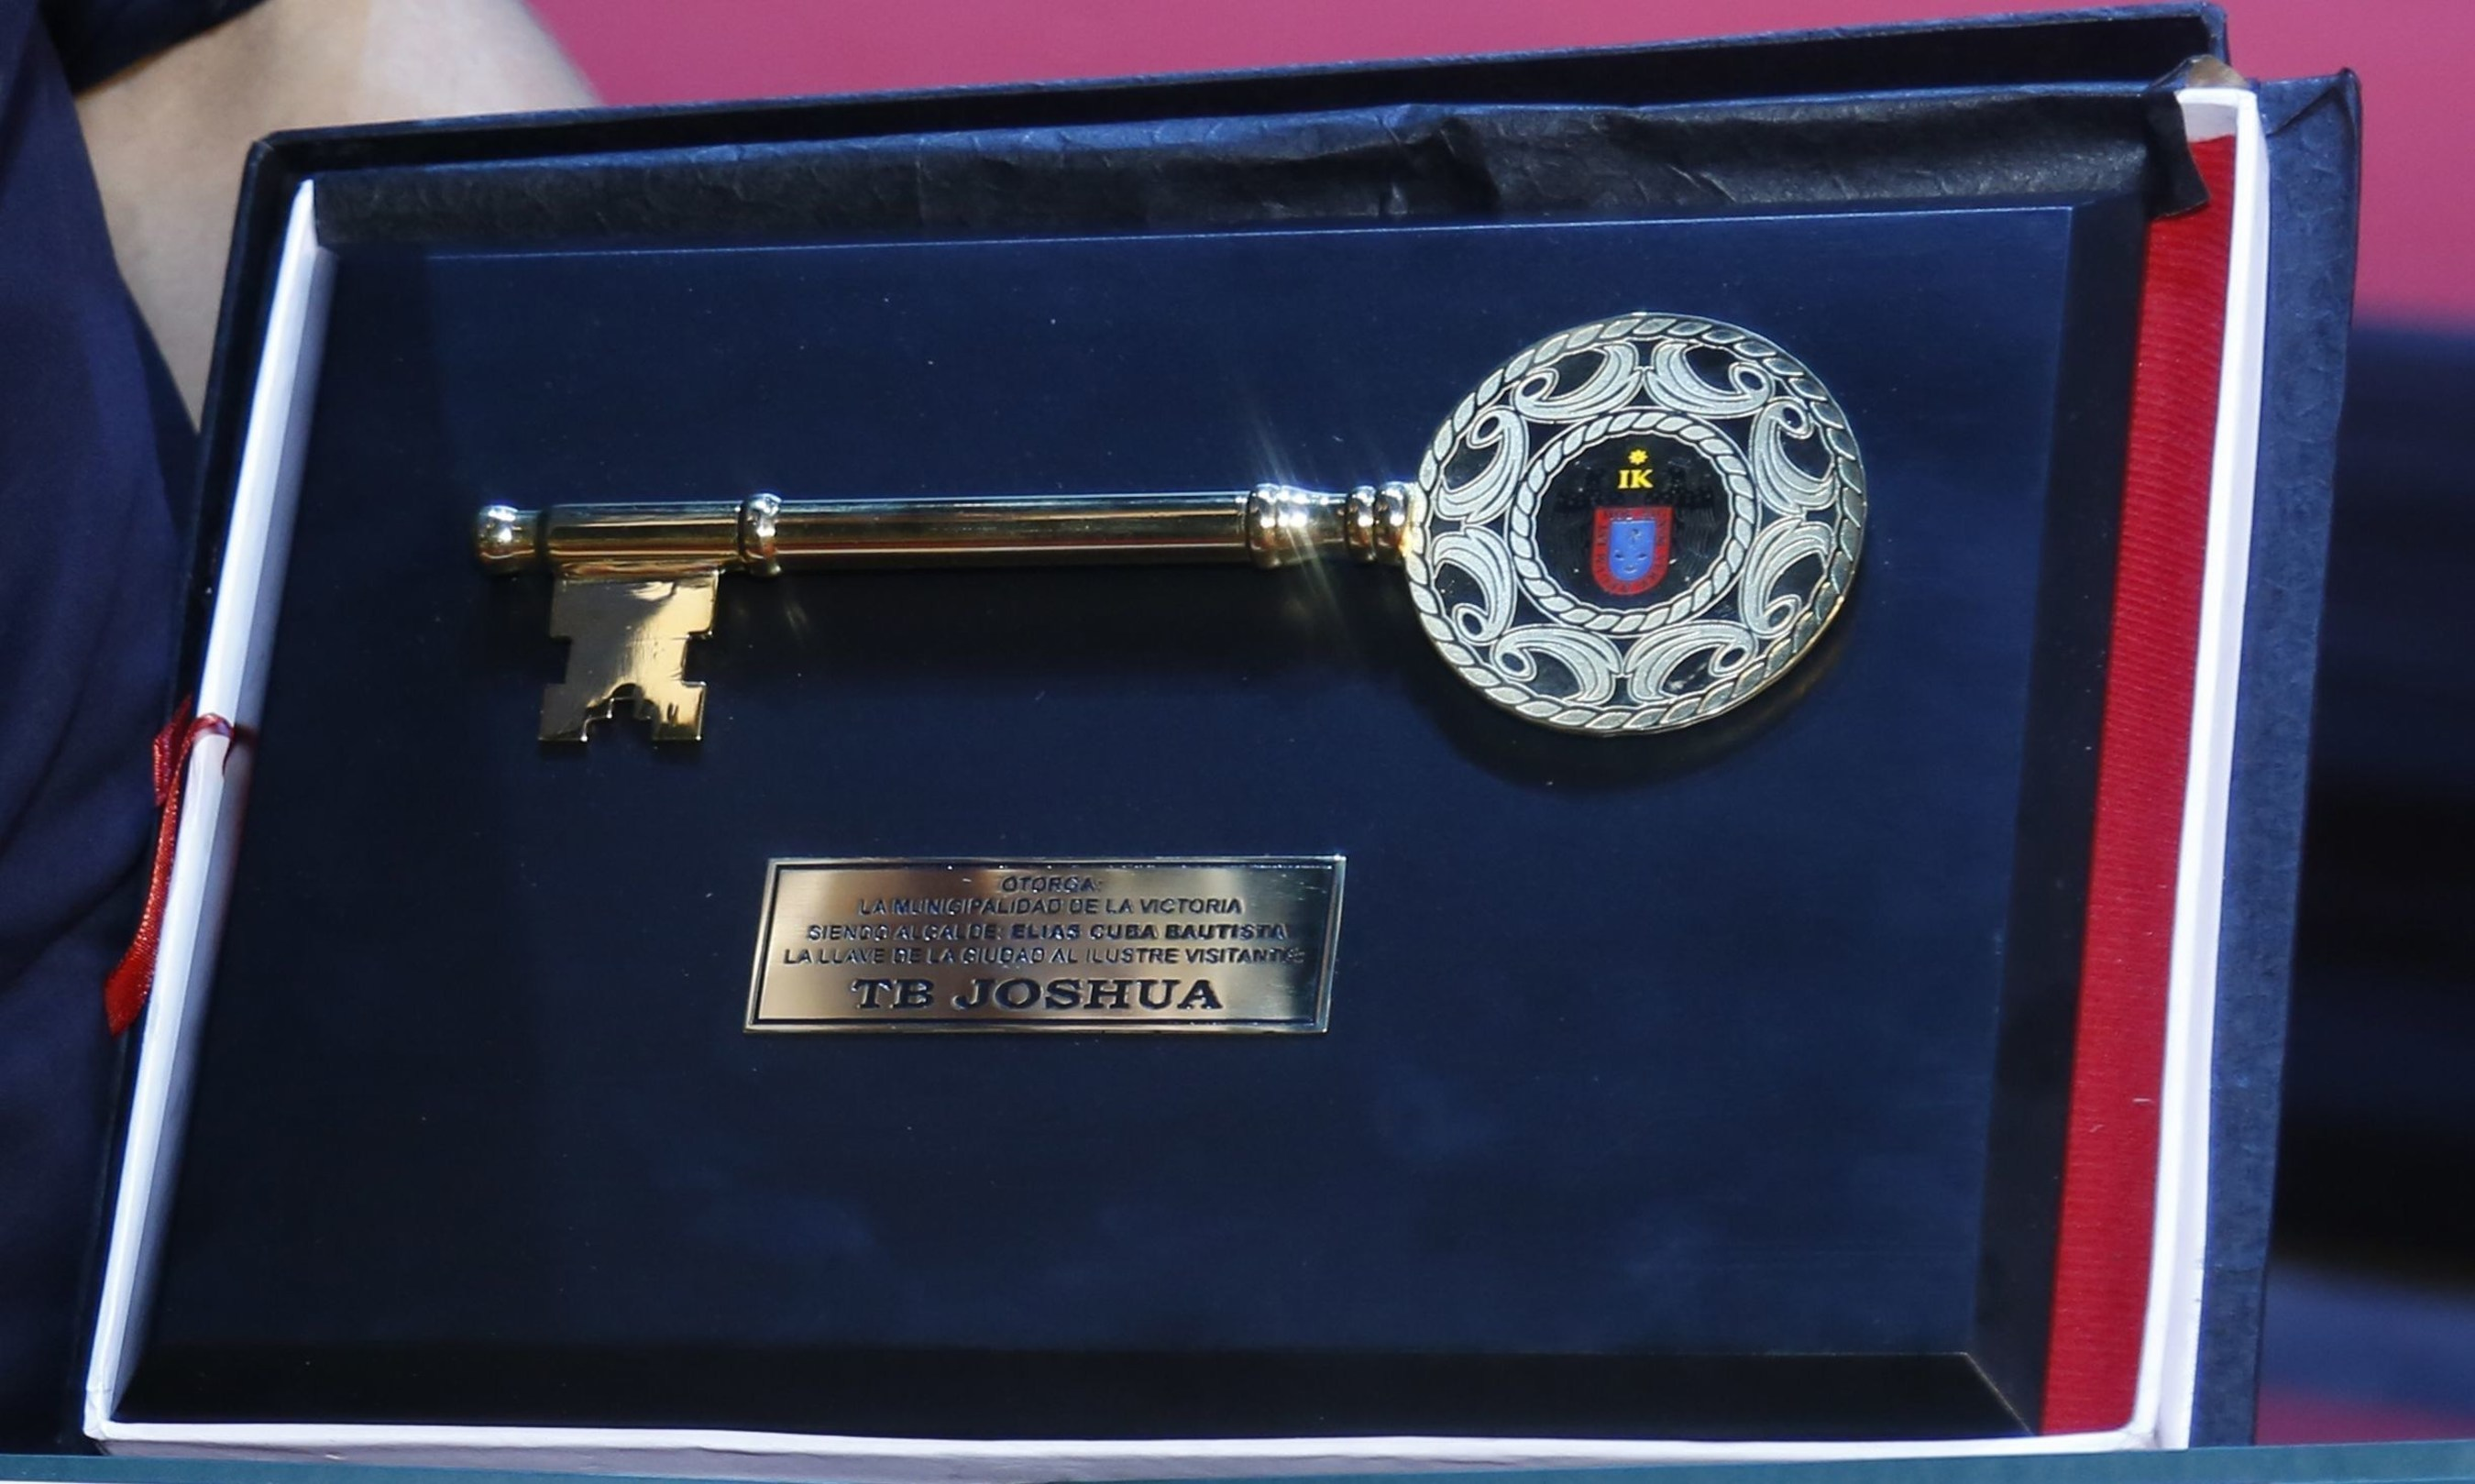 The Key of the City of Lima that T.B. Joshua was honoured with. (PRNewsFoto/Emmanuel TV)